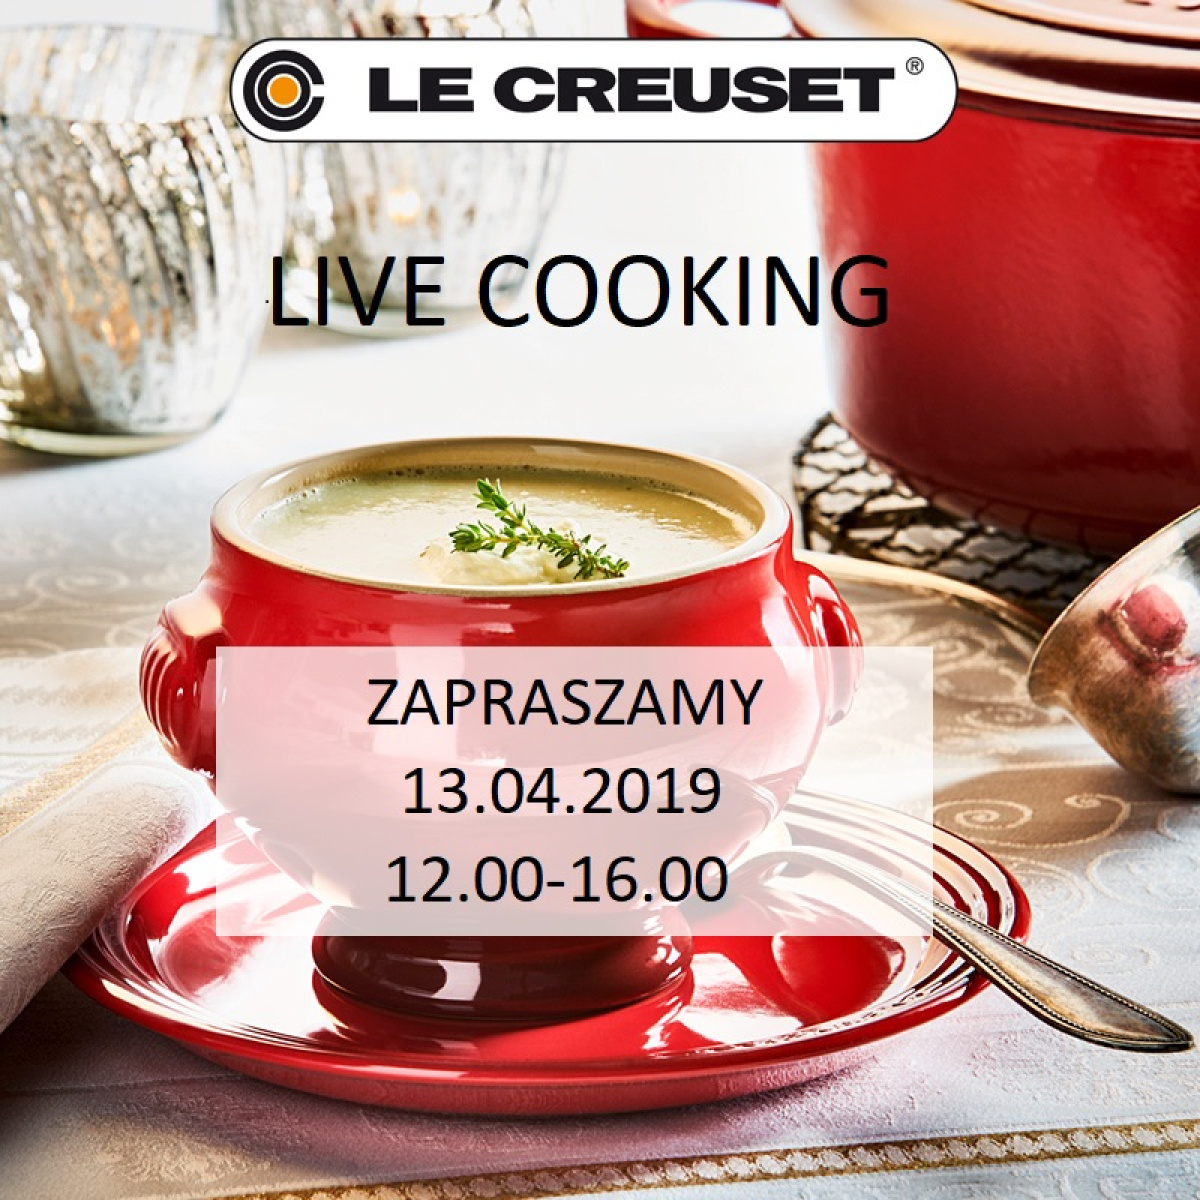 Le Creuset - Live Cooking